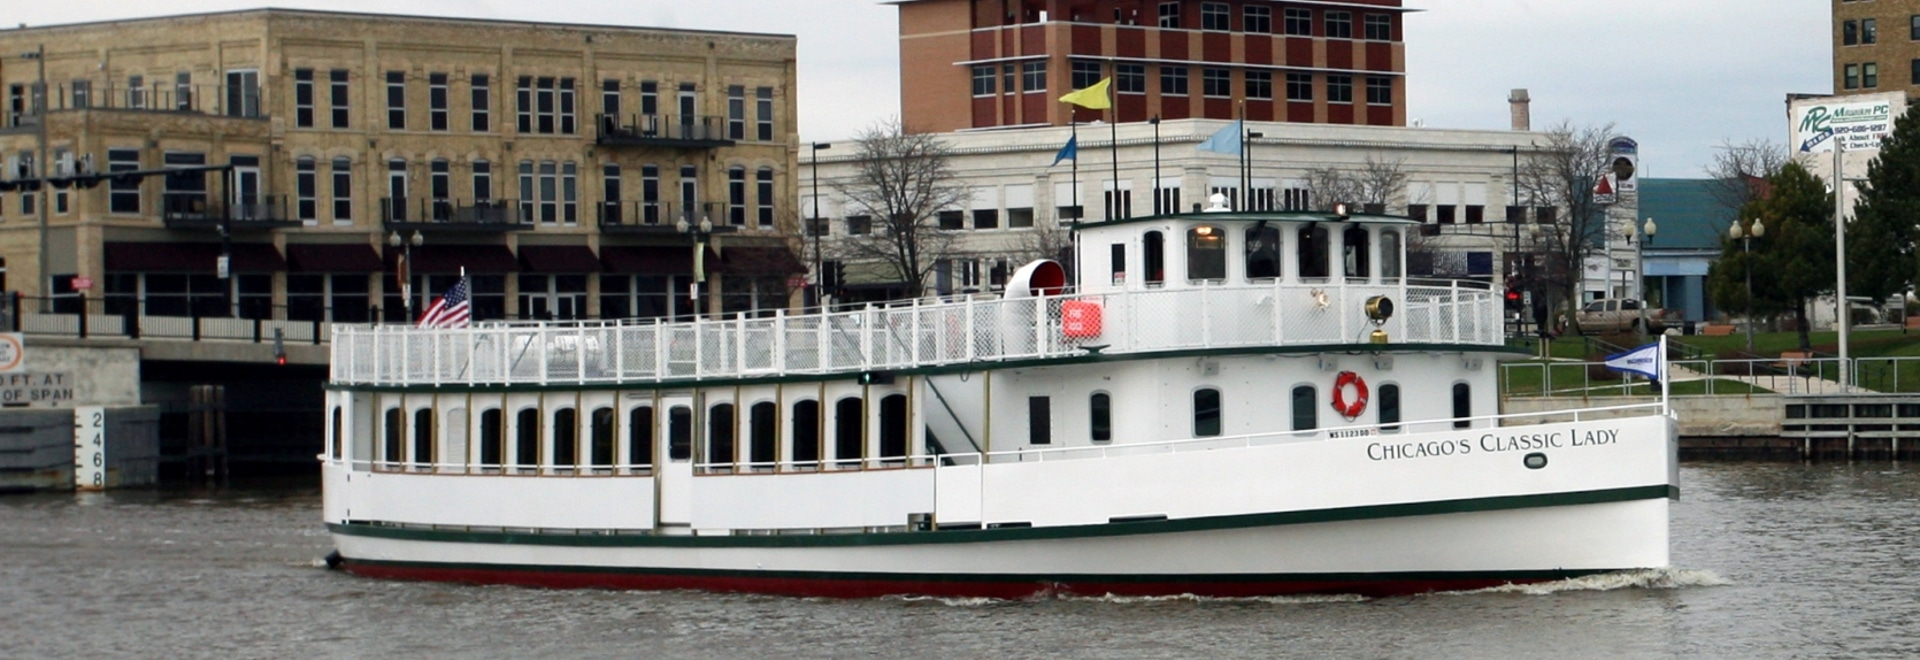 Chicago's Classic Lady. Burger Boat Company image